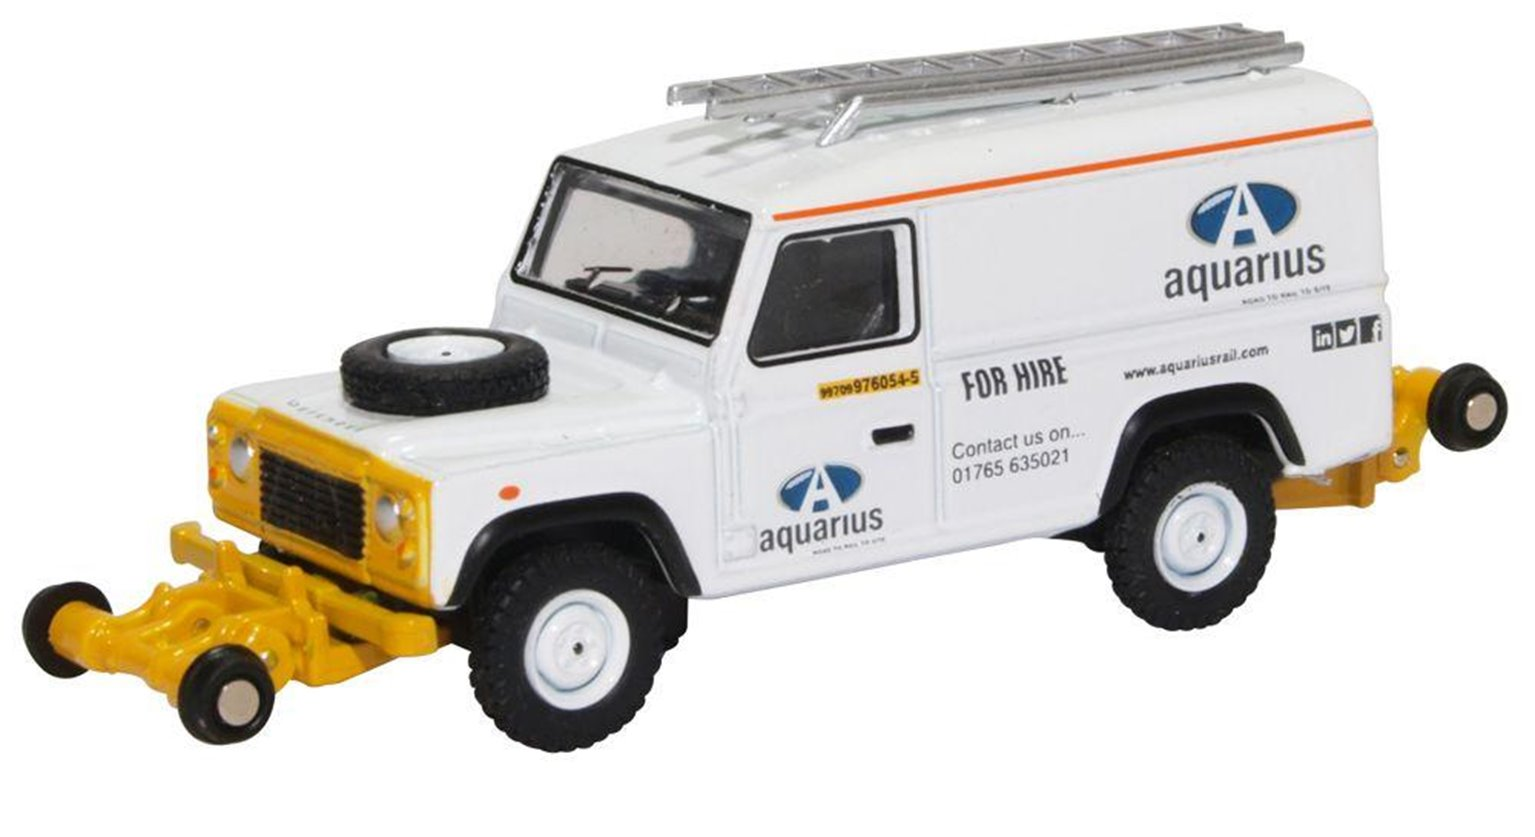 Rail/Road Defender Open Aquarius Rail Technology